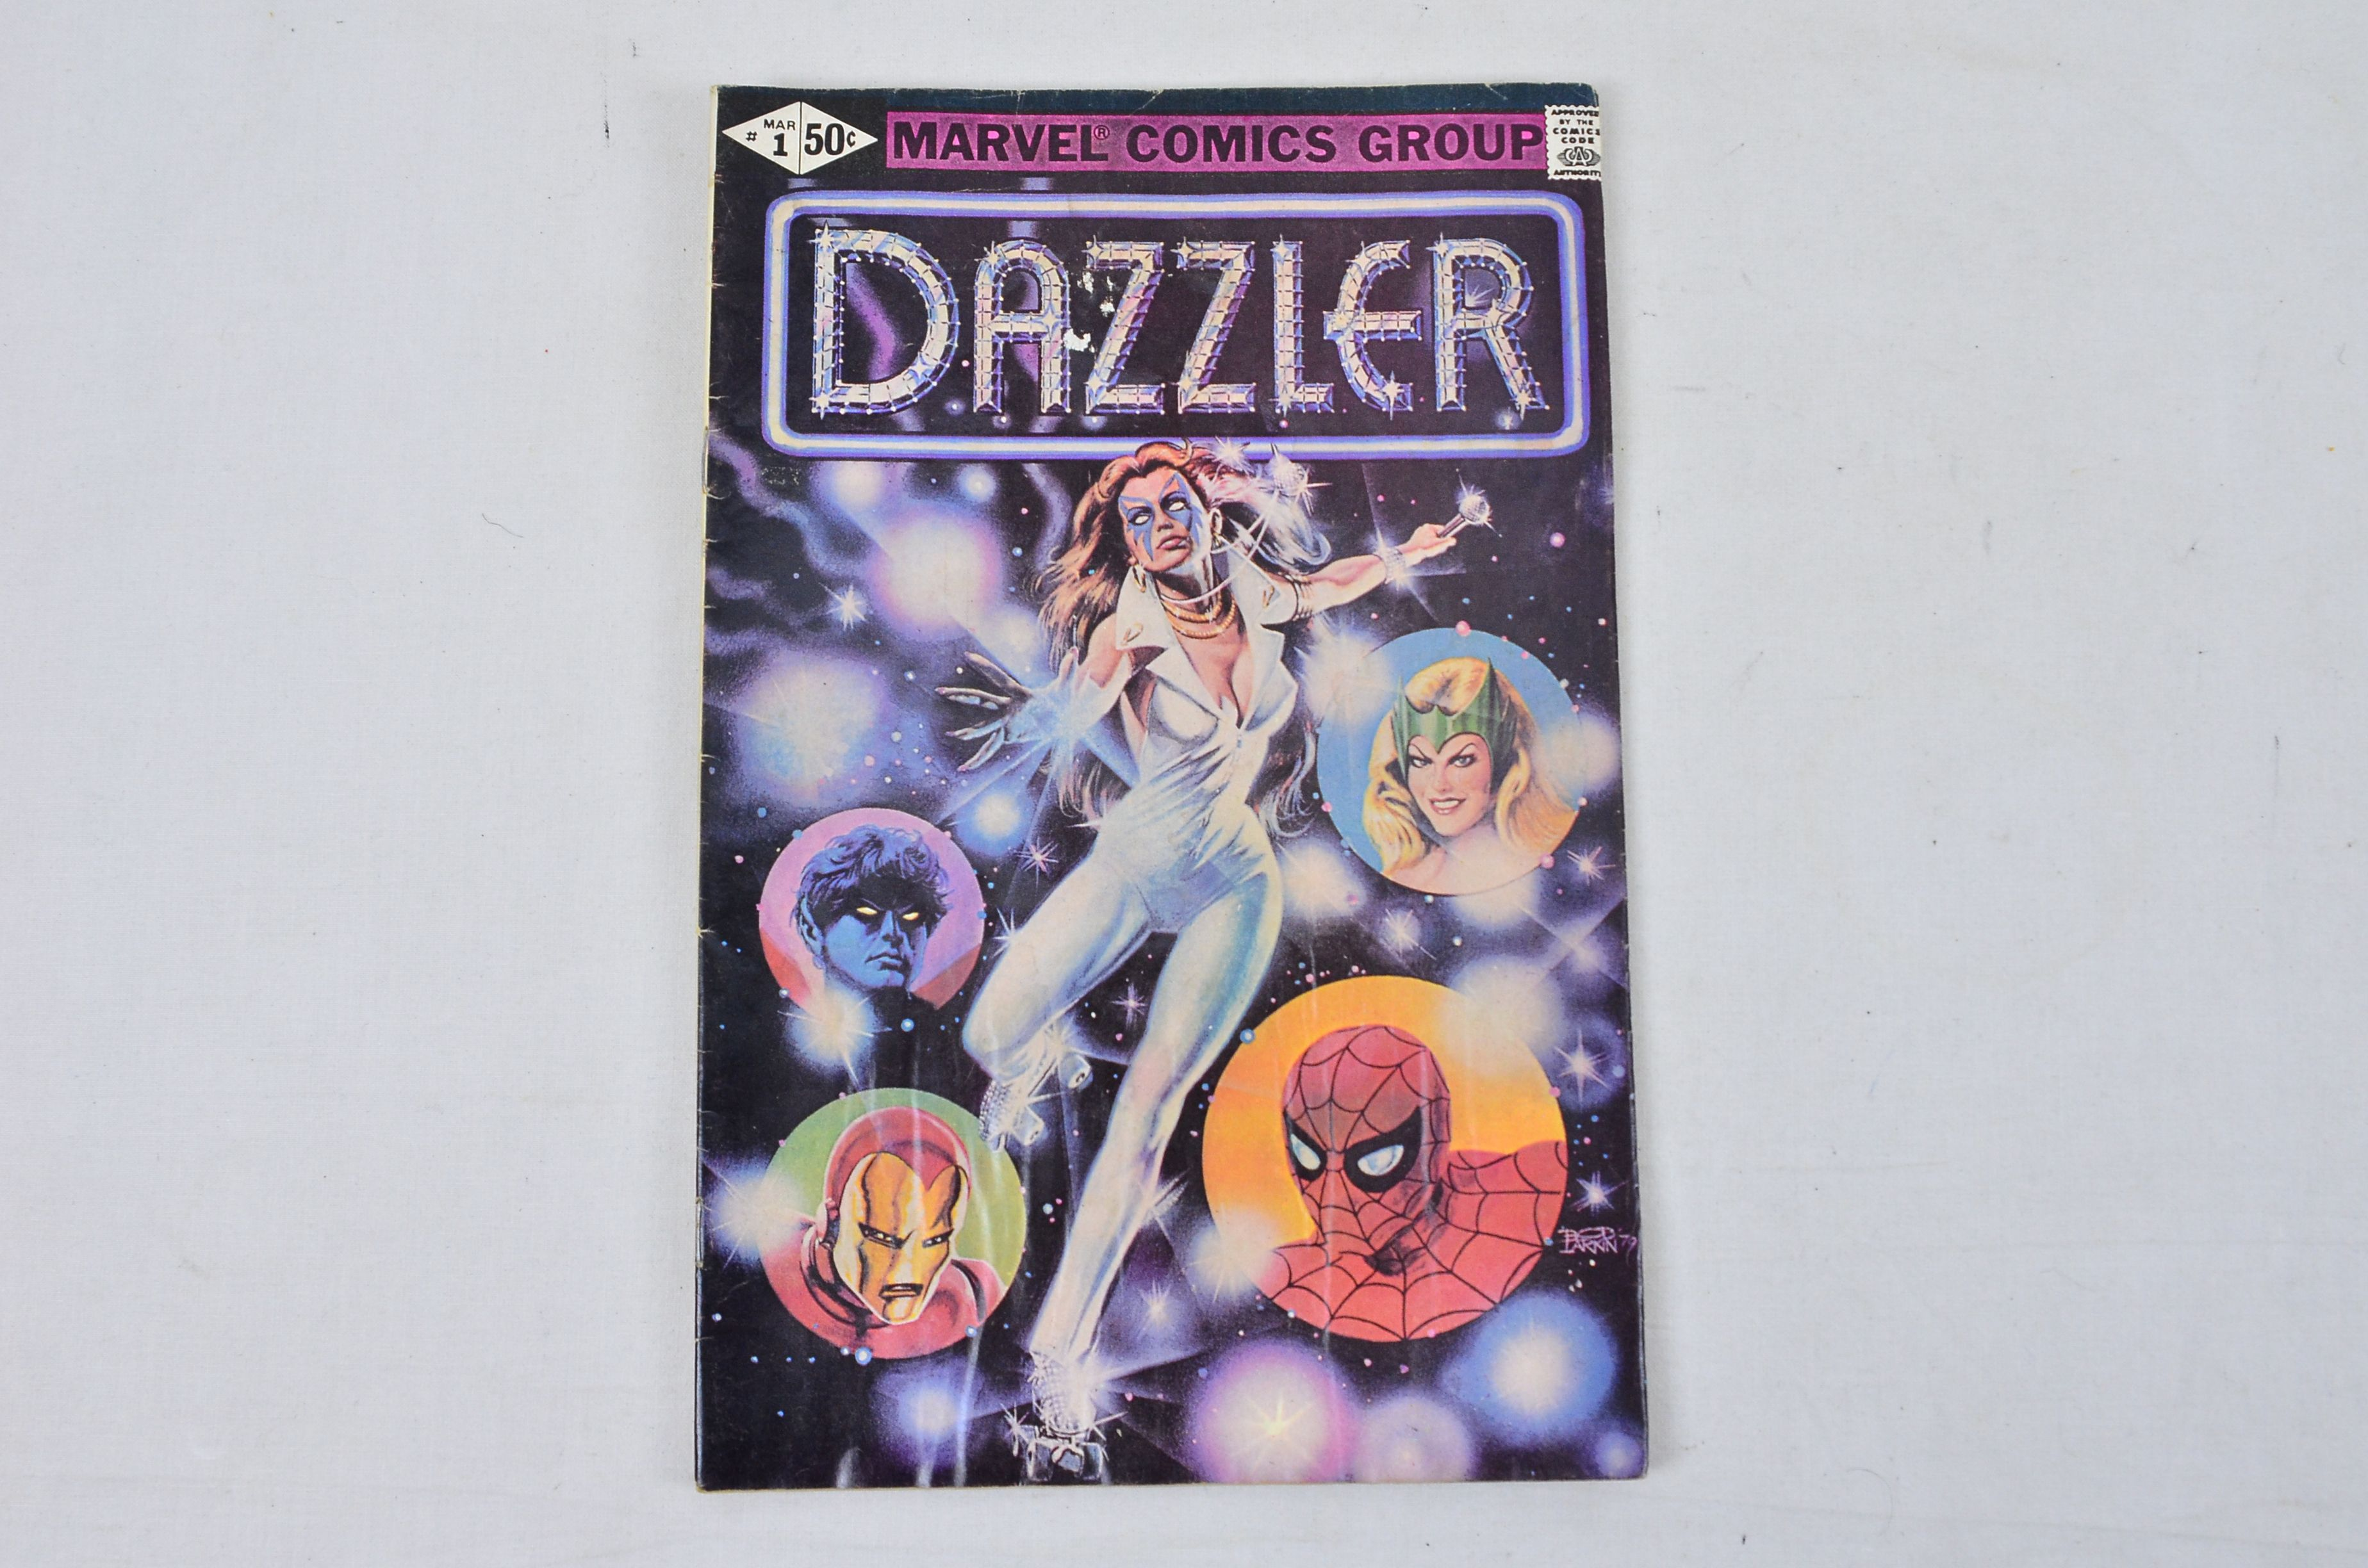 Vintage Marvel Comics Group Dazzler Collectable Comic Thumbnail 2